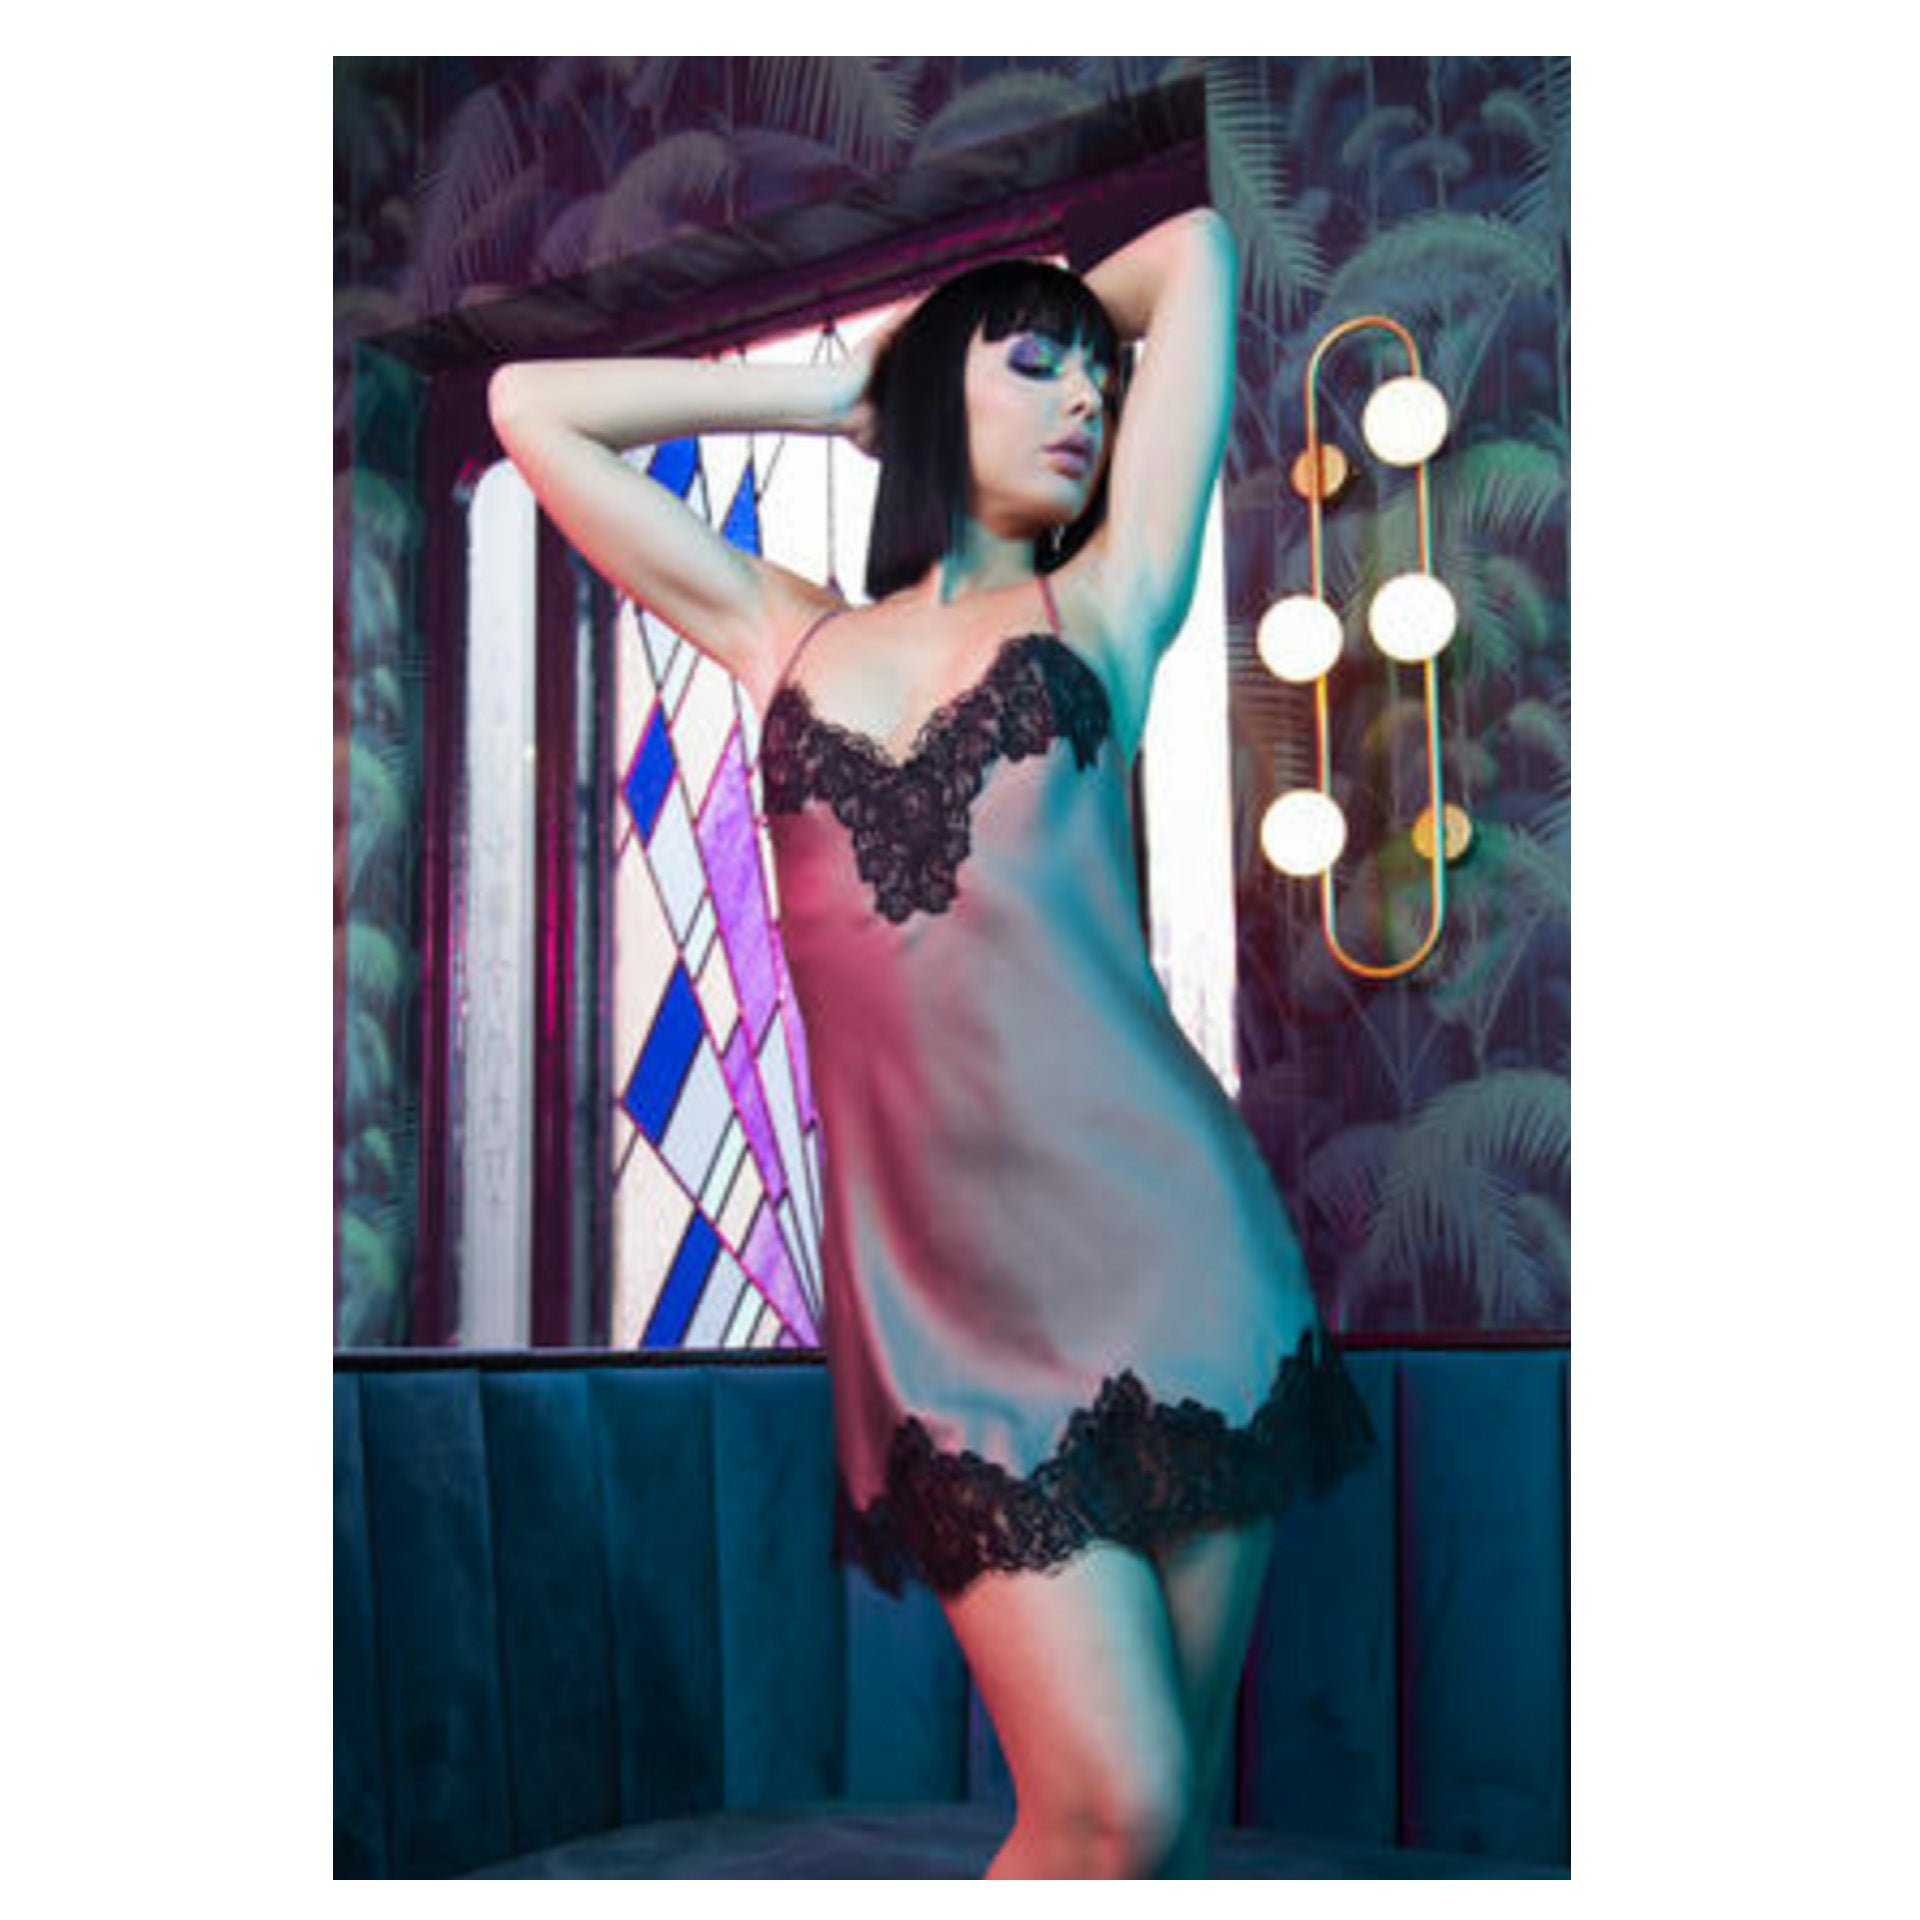 New Satin Negligee by Playful Promises